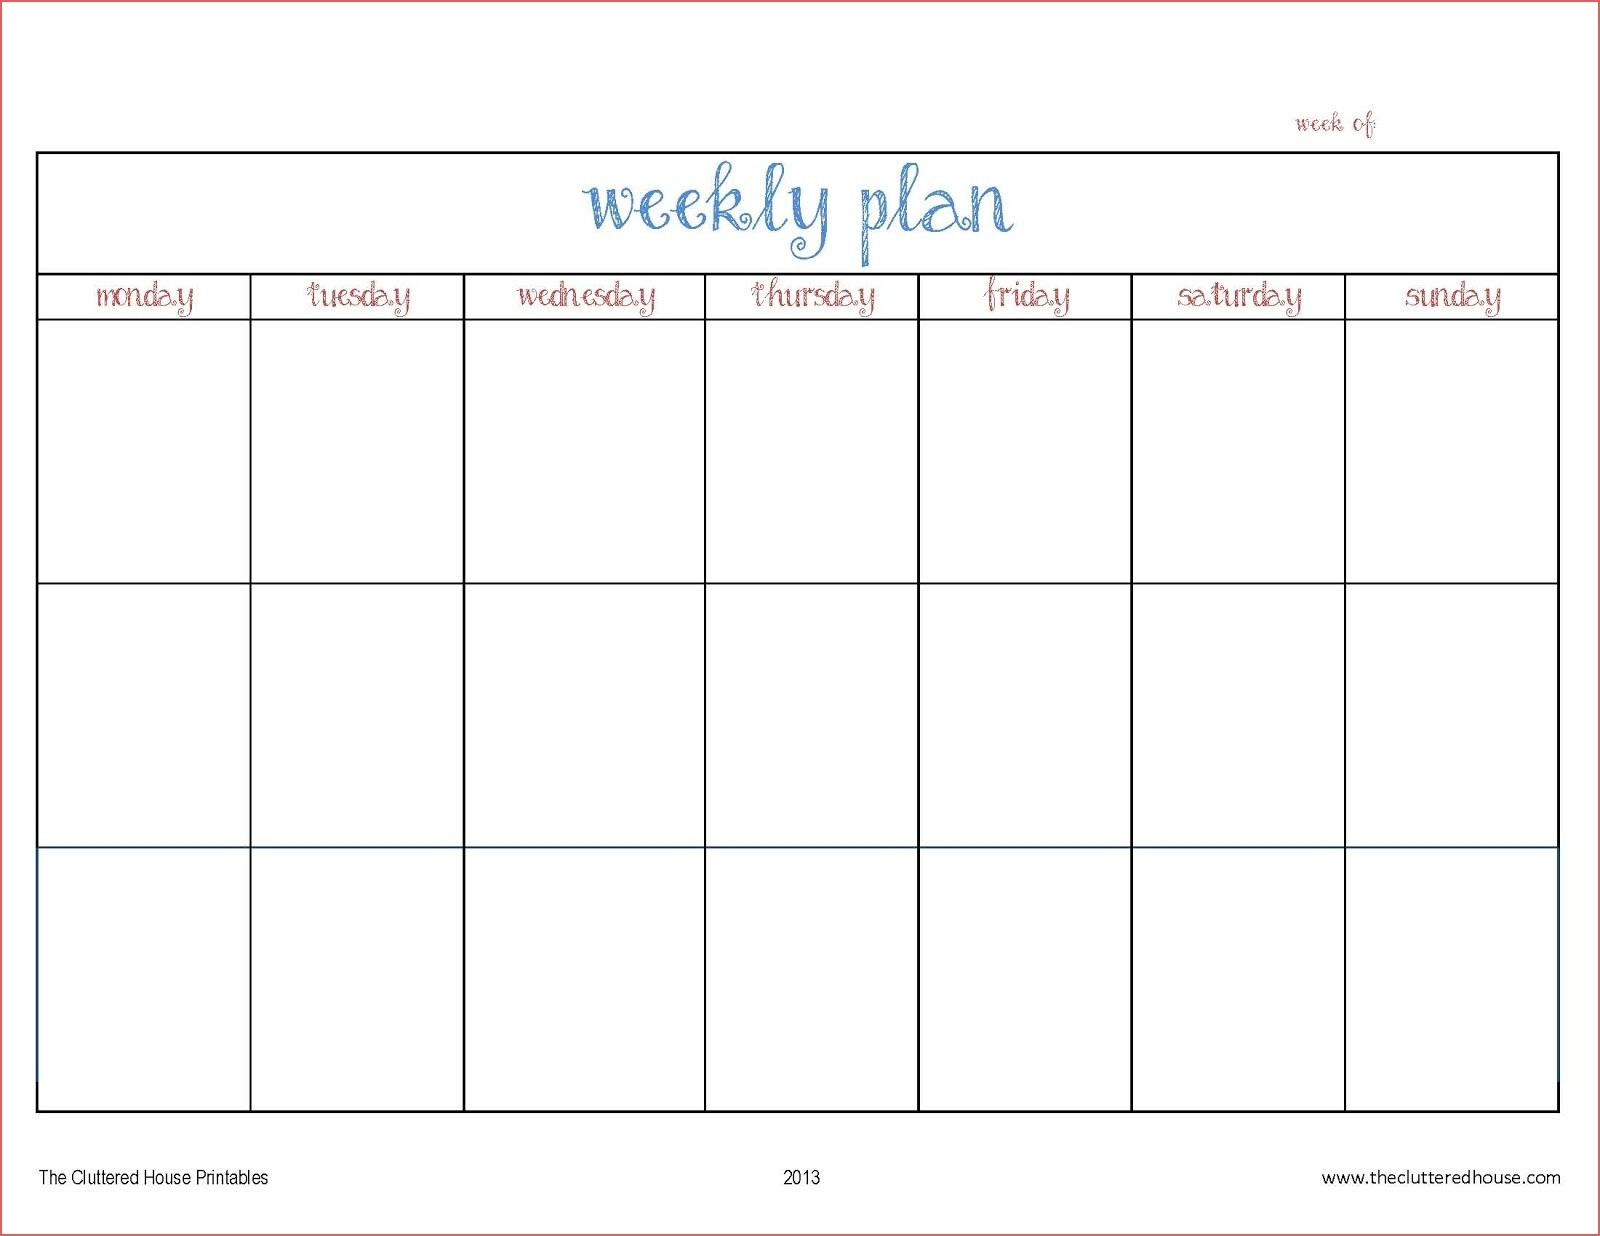 Printable Calendar Days Printable 4 Week Calendar Blank Days Of Week pertaining to Days Of The Week Printable Calendar